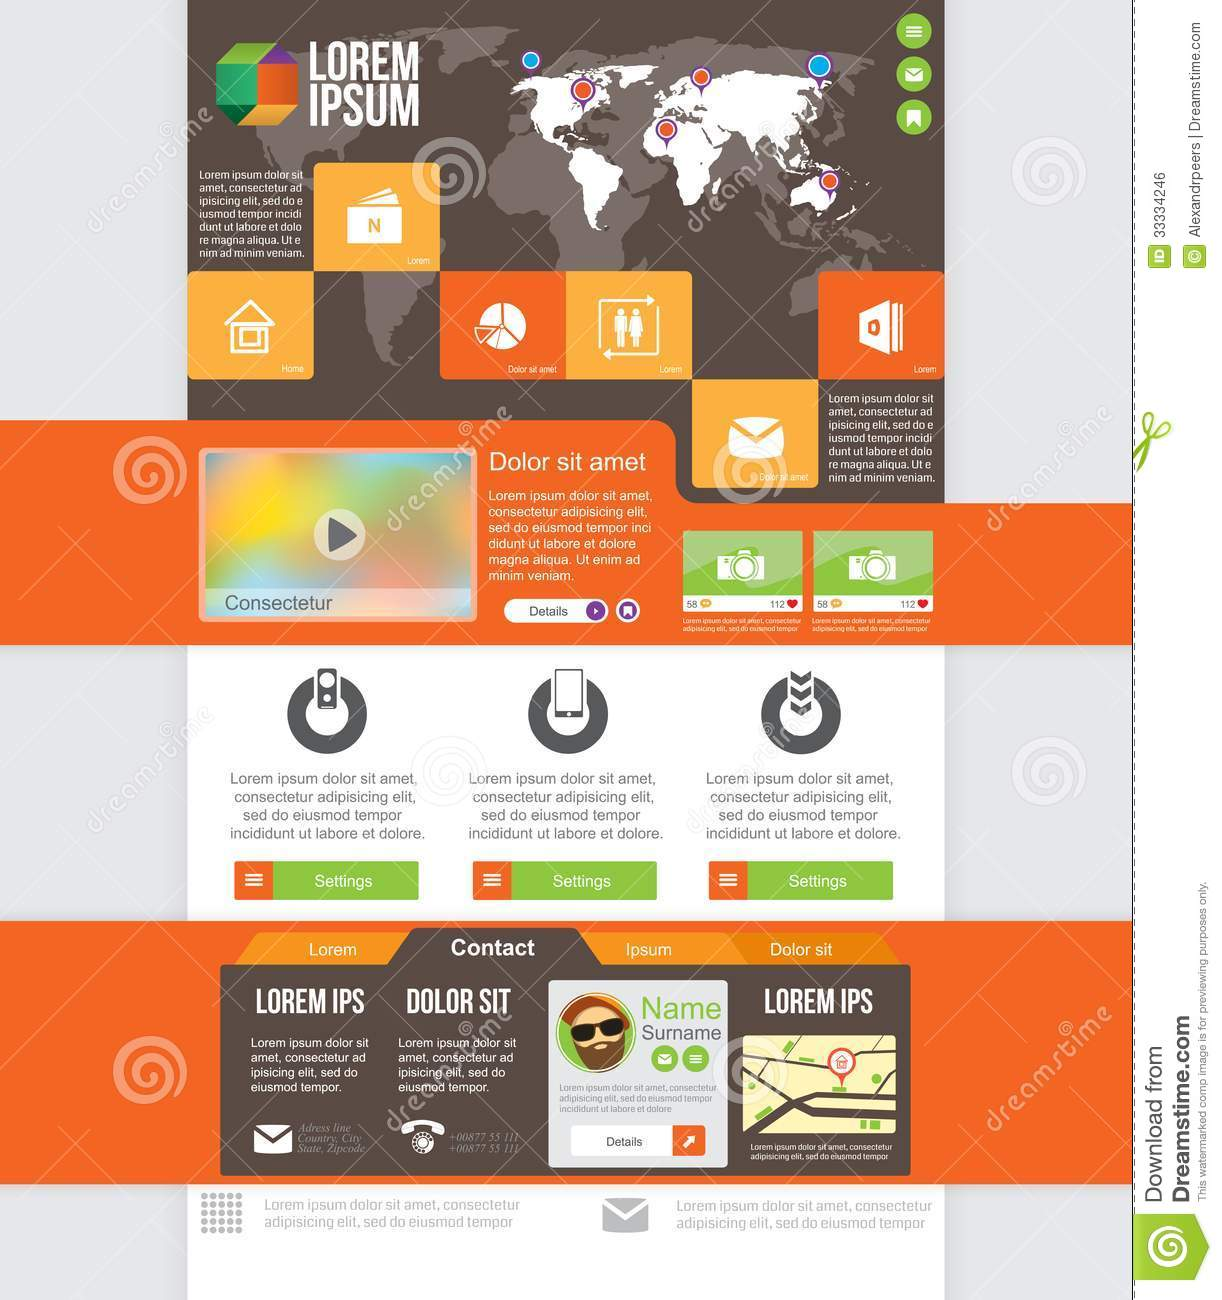 Home Page Design   Google 搜尋 | PALETTE Website VI | Pinterest | Homepage  Design